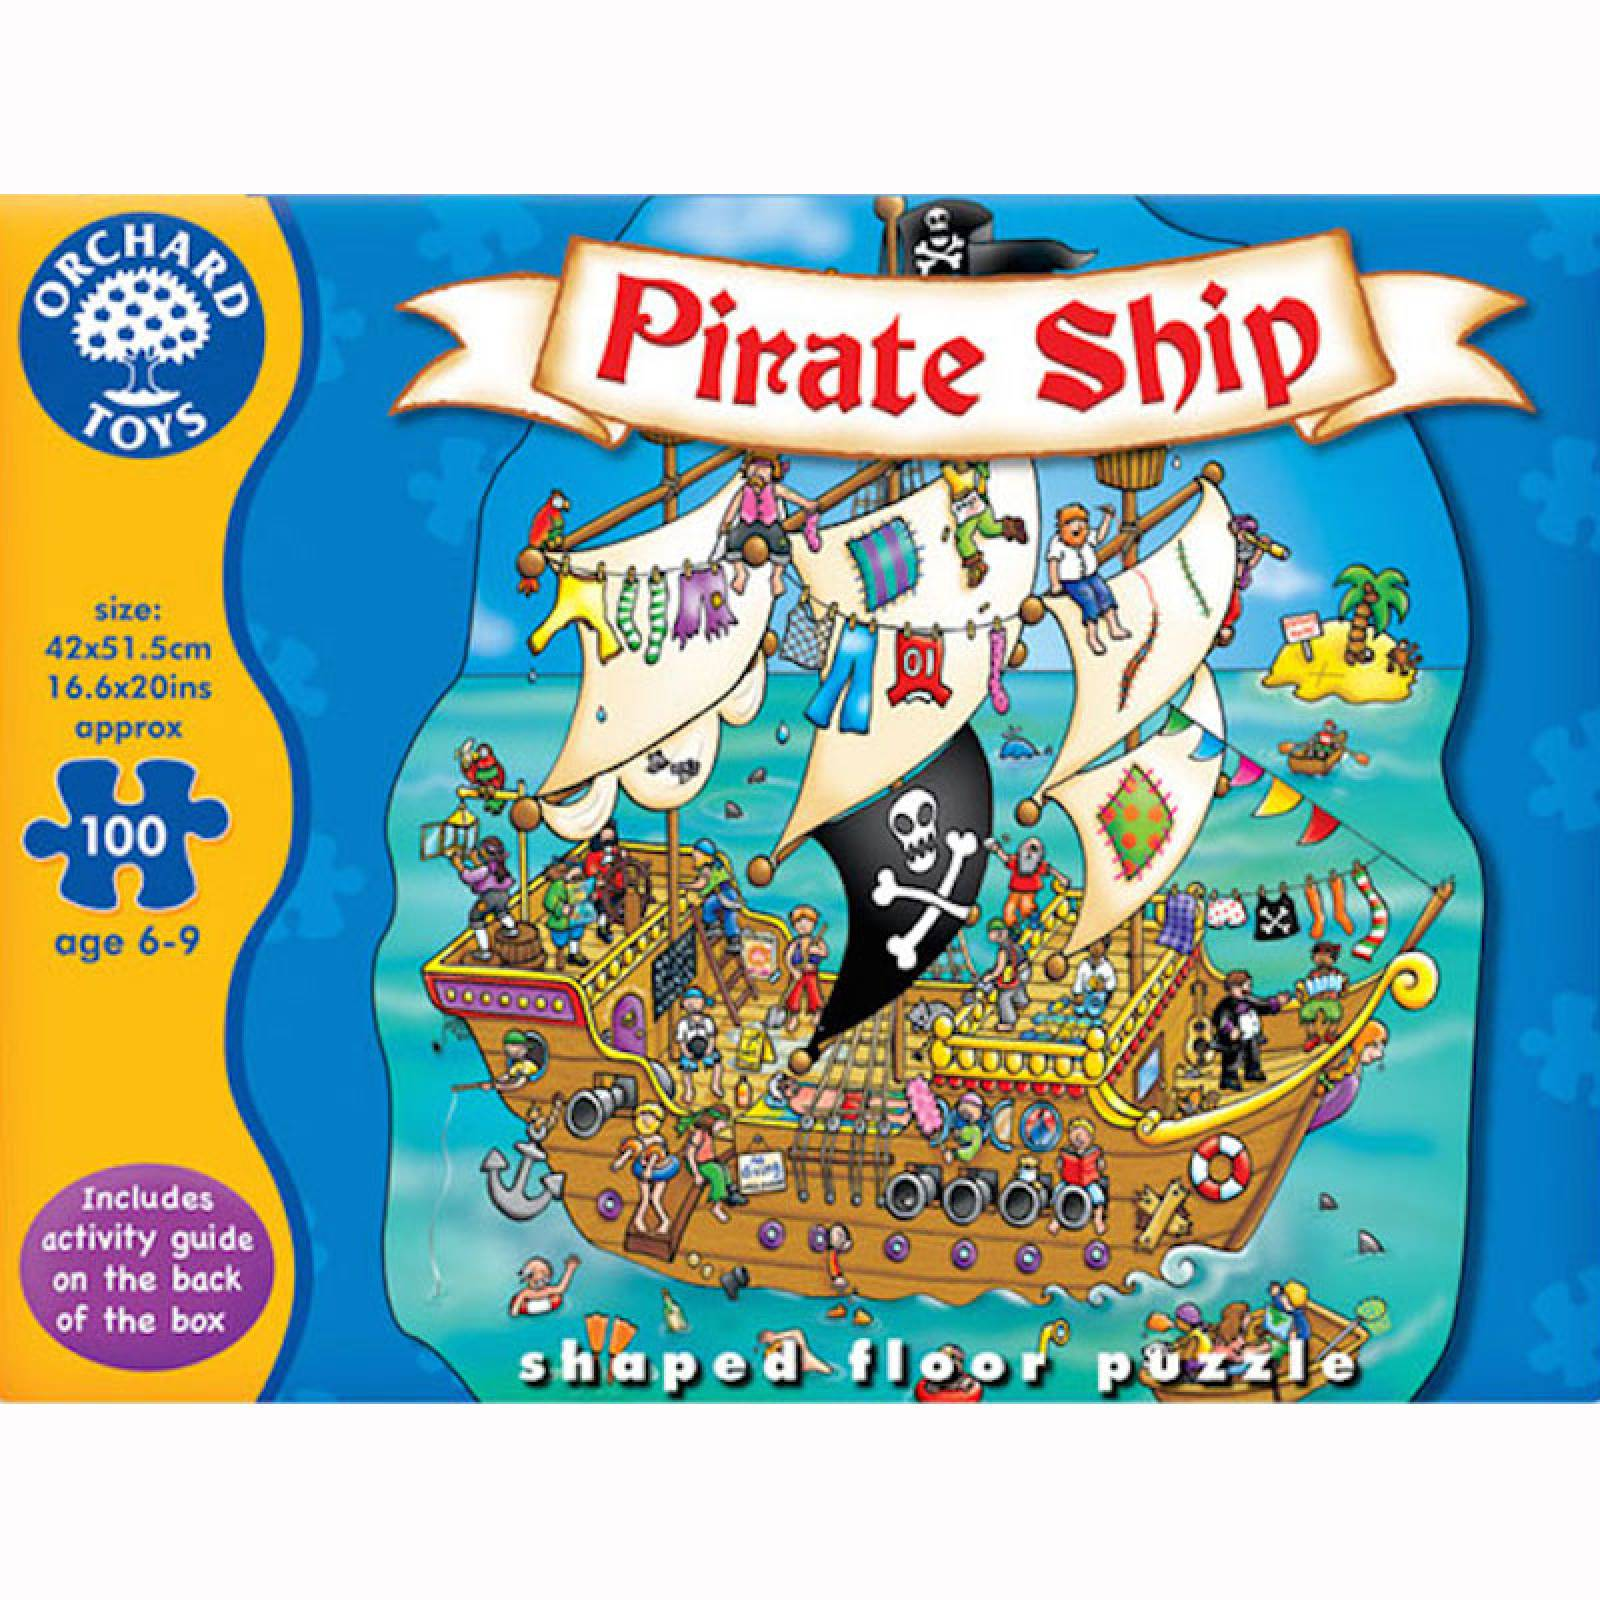 Pirate Ship Puzzle Jigsaw By Orchard Toys thumbnails